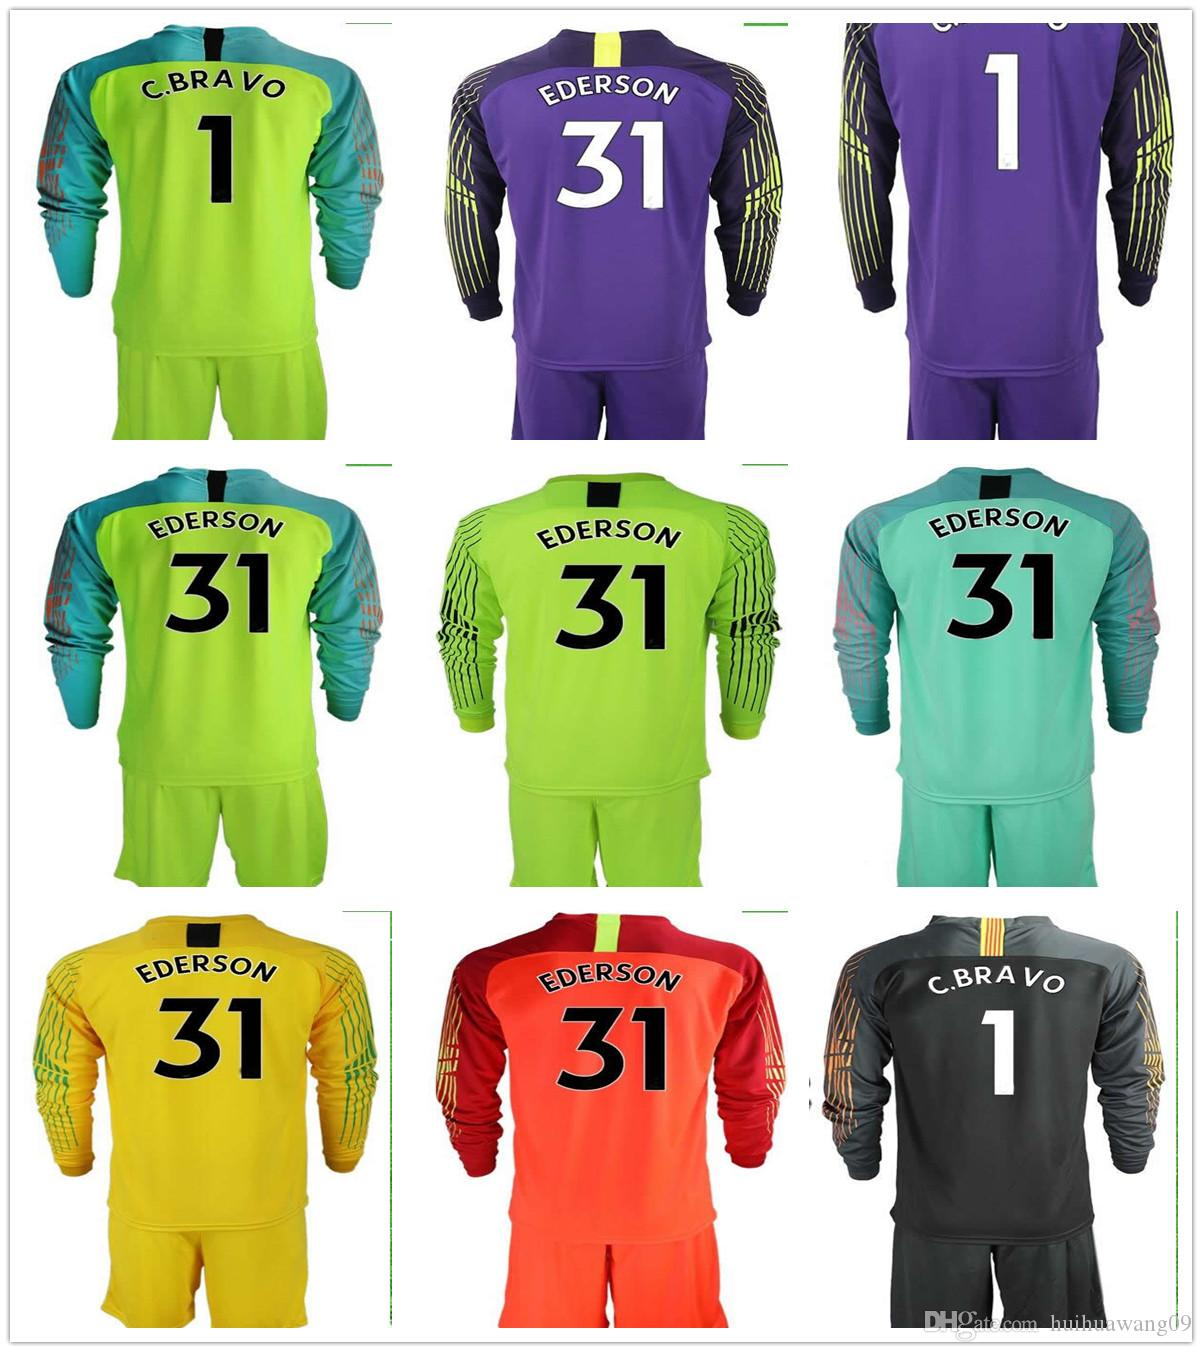 5fae346e2 2019 2018 2019 Long Sleeve Blue Moon City Soccer Jerseys Claudio Bravo Goalkeeper  Jersey  1 C. Bravo  31 Ederson Adults Uniforms Football Sets From ...